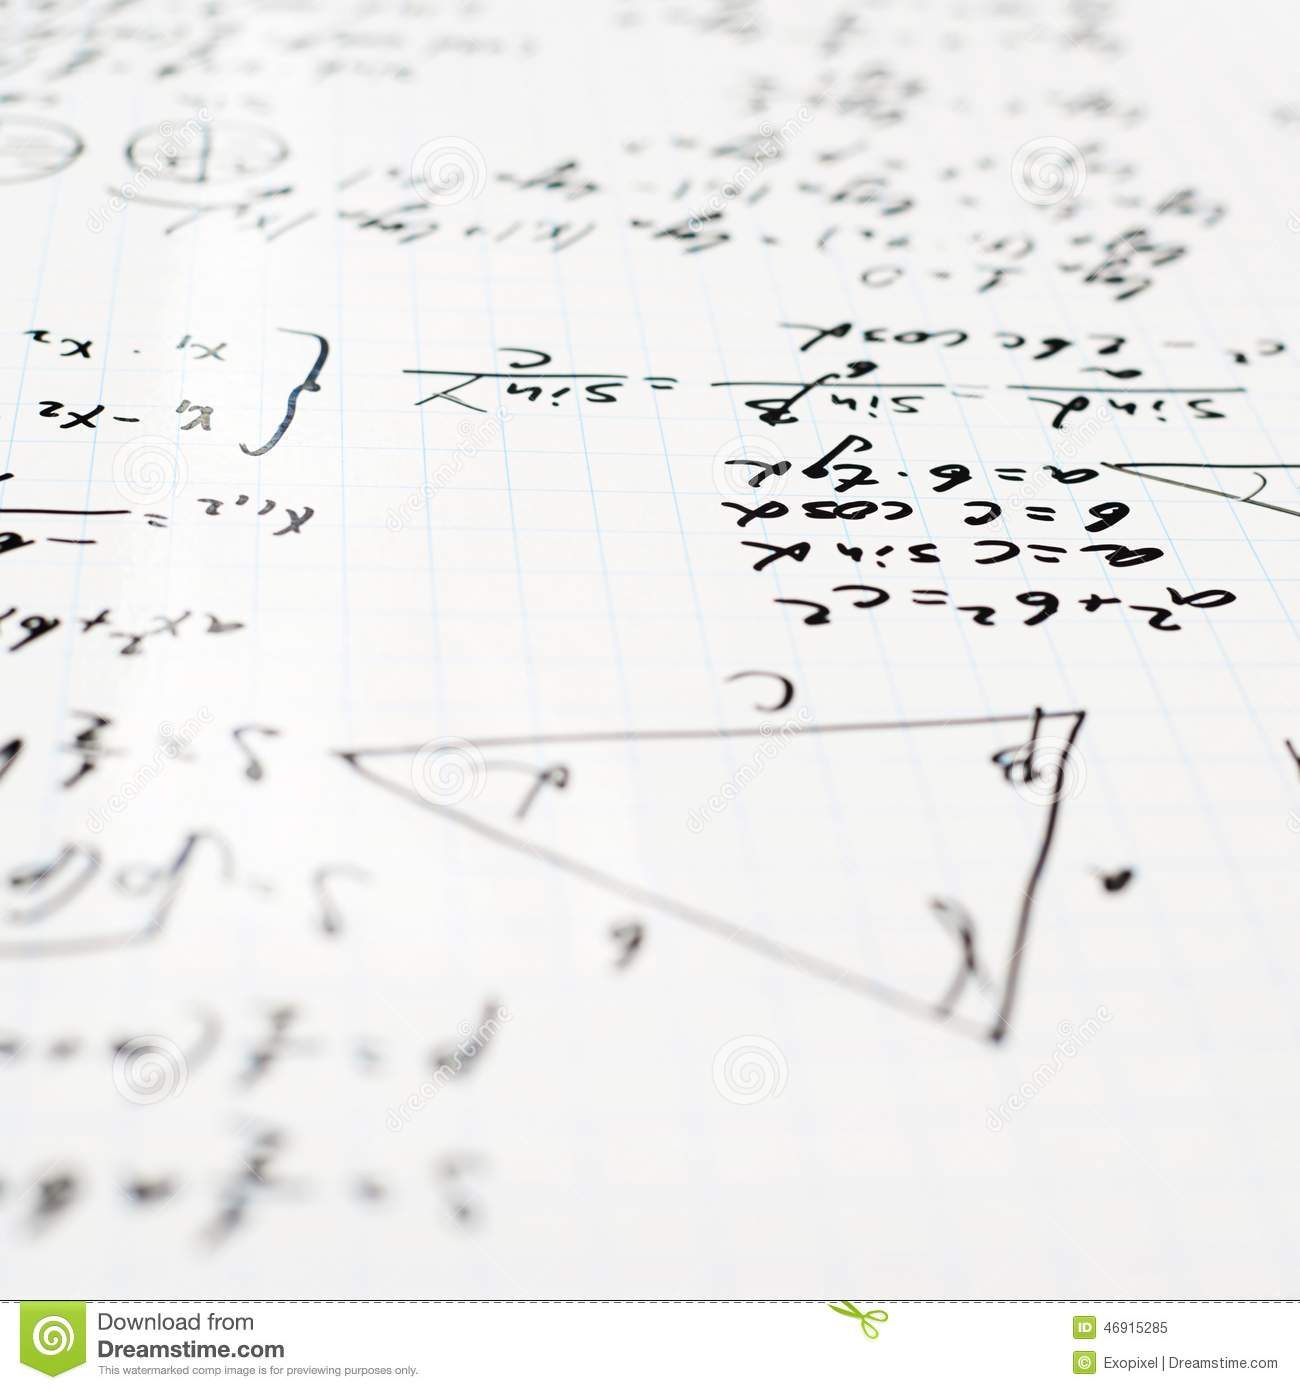 how to learn trigonometry formulas